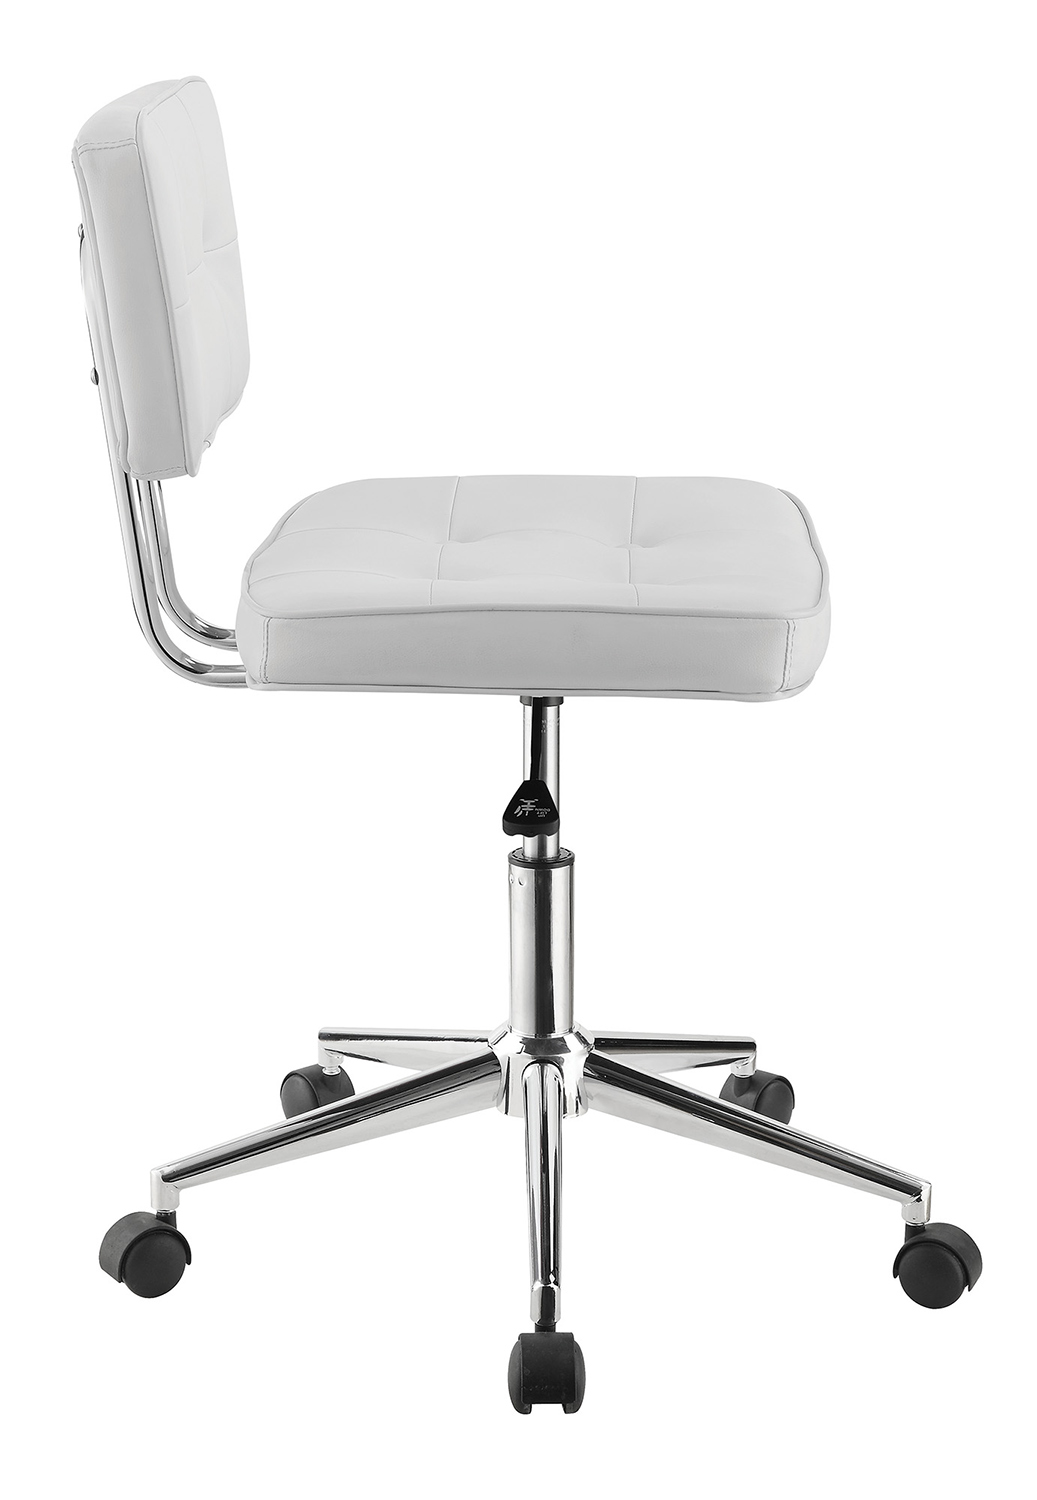 Coaster 802289 Office Chair - White/Chrome